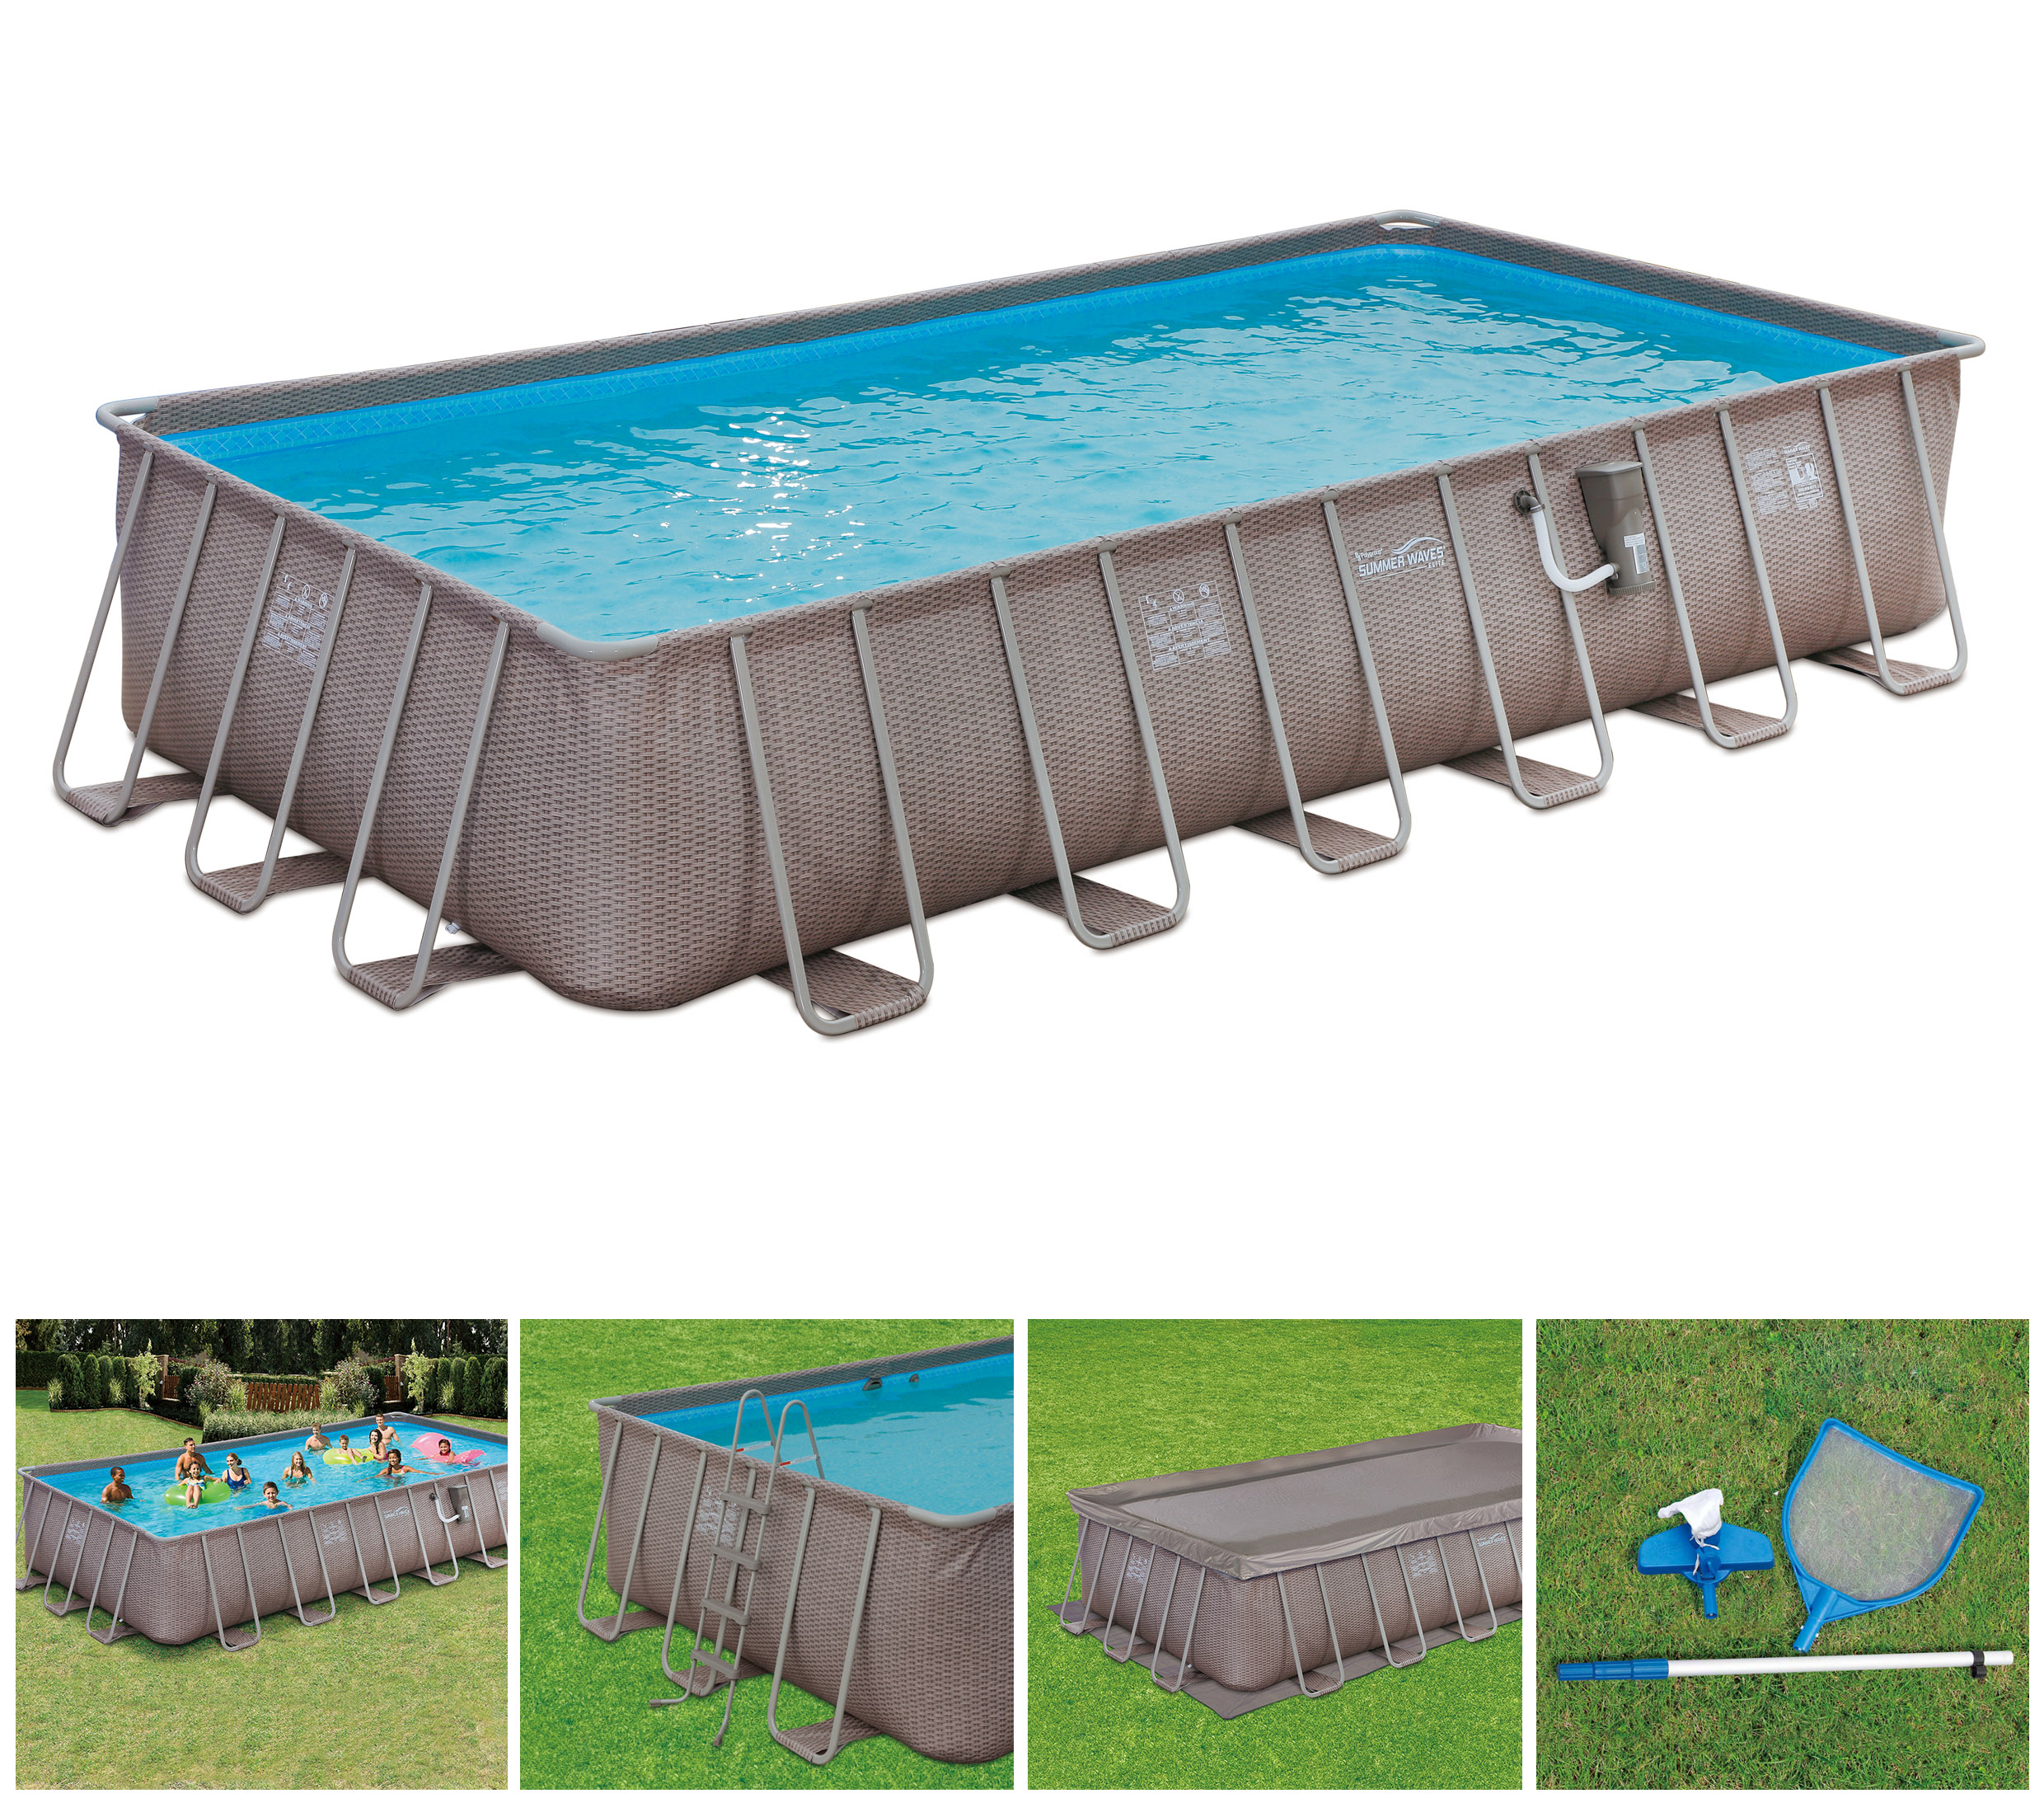 Summer Waves 24â X 12â 52â Above Ground Rectangle Frame Pool Set Brown Wicker